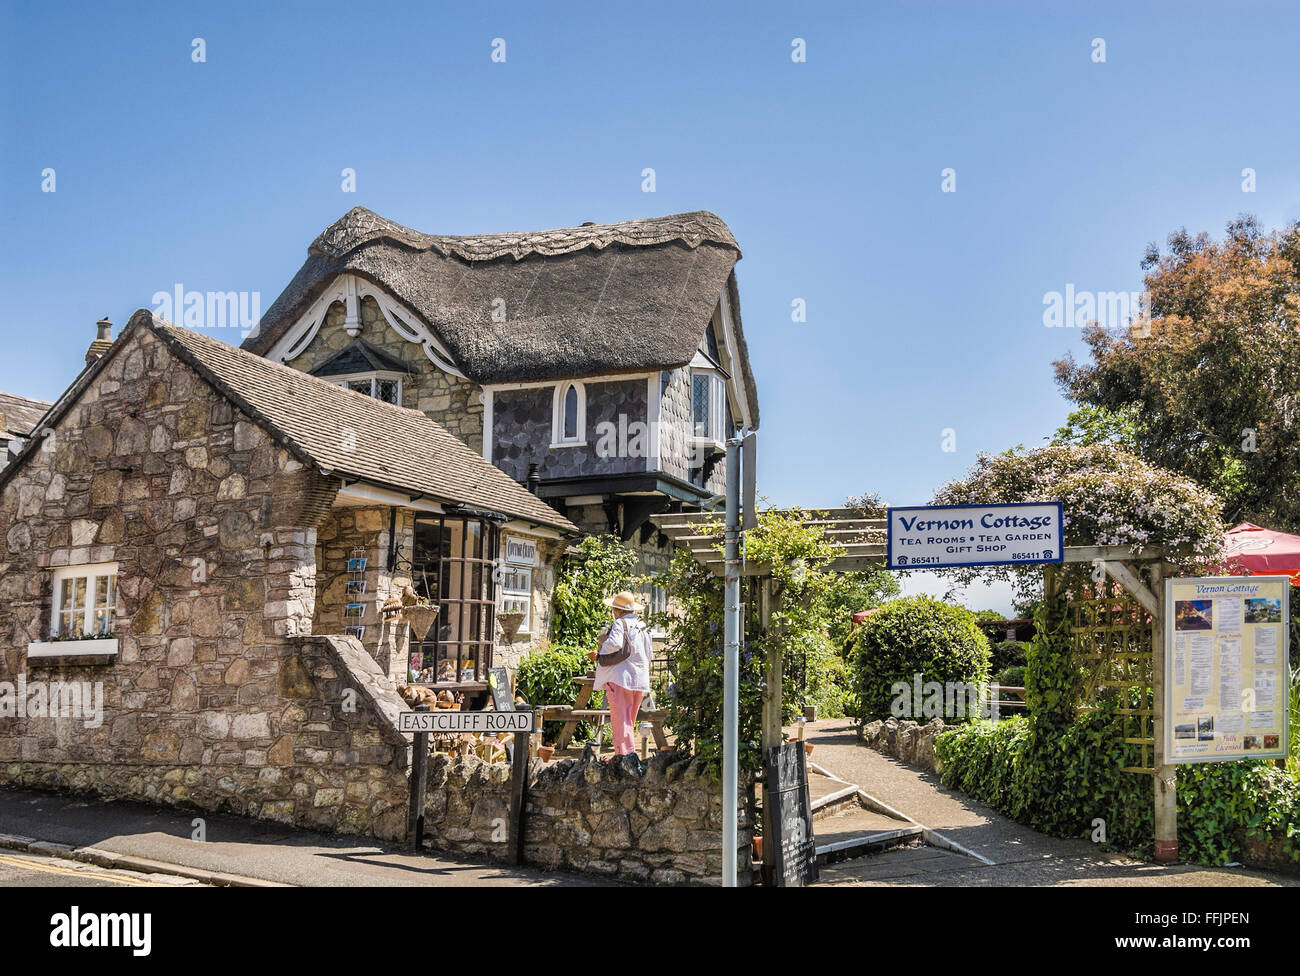 Thatched roof Vernon cottage at village Shanklin, Isle of Wight, South England |  Vernon cottage Dorf Shanklin, - Stock Image